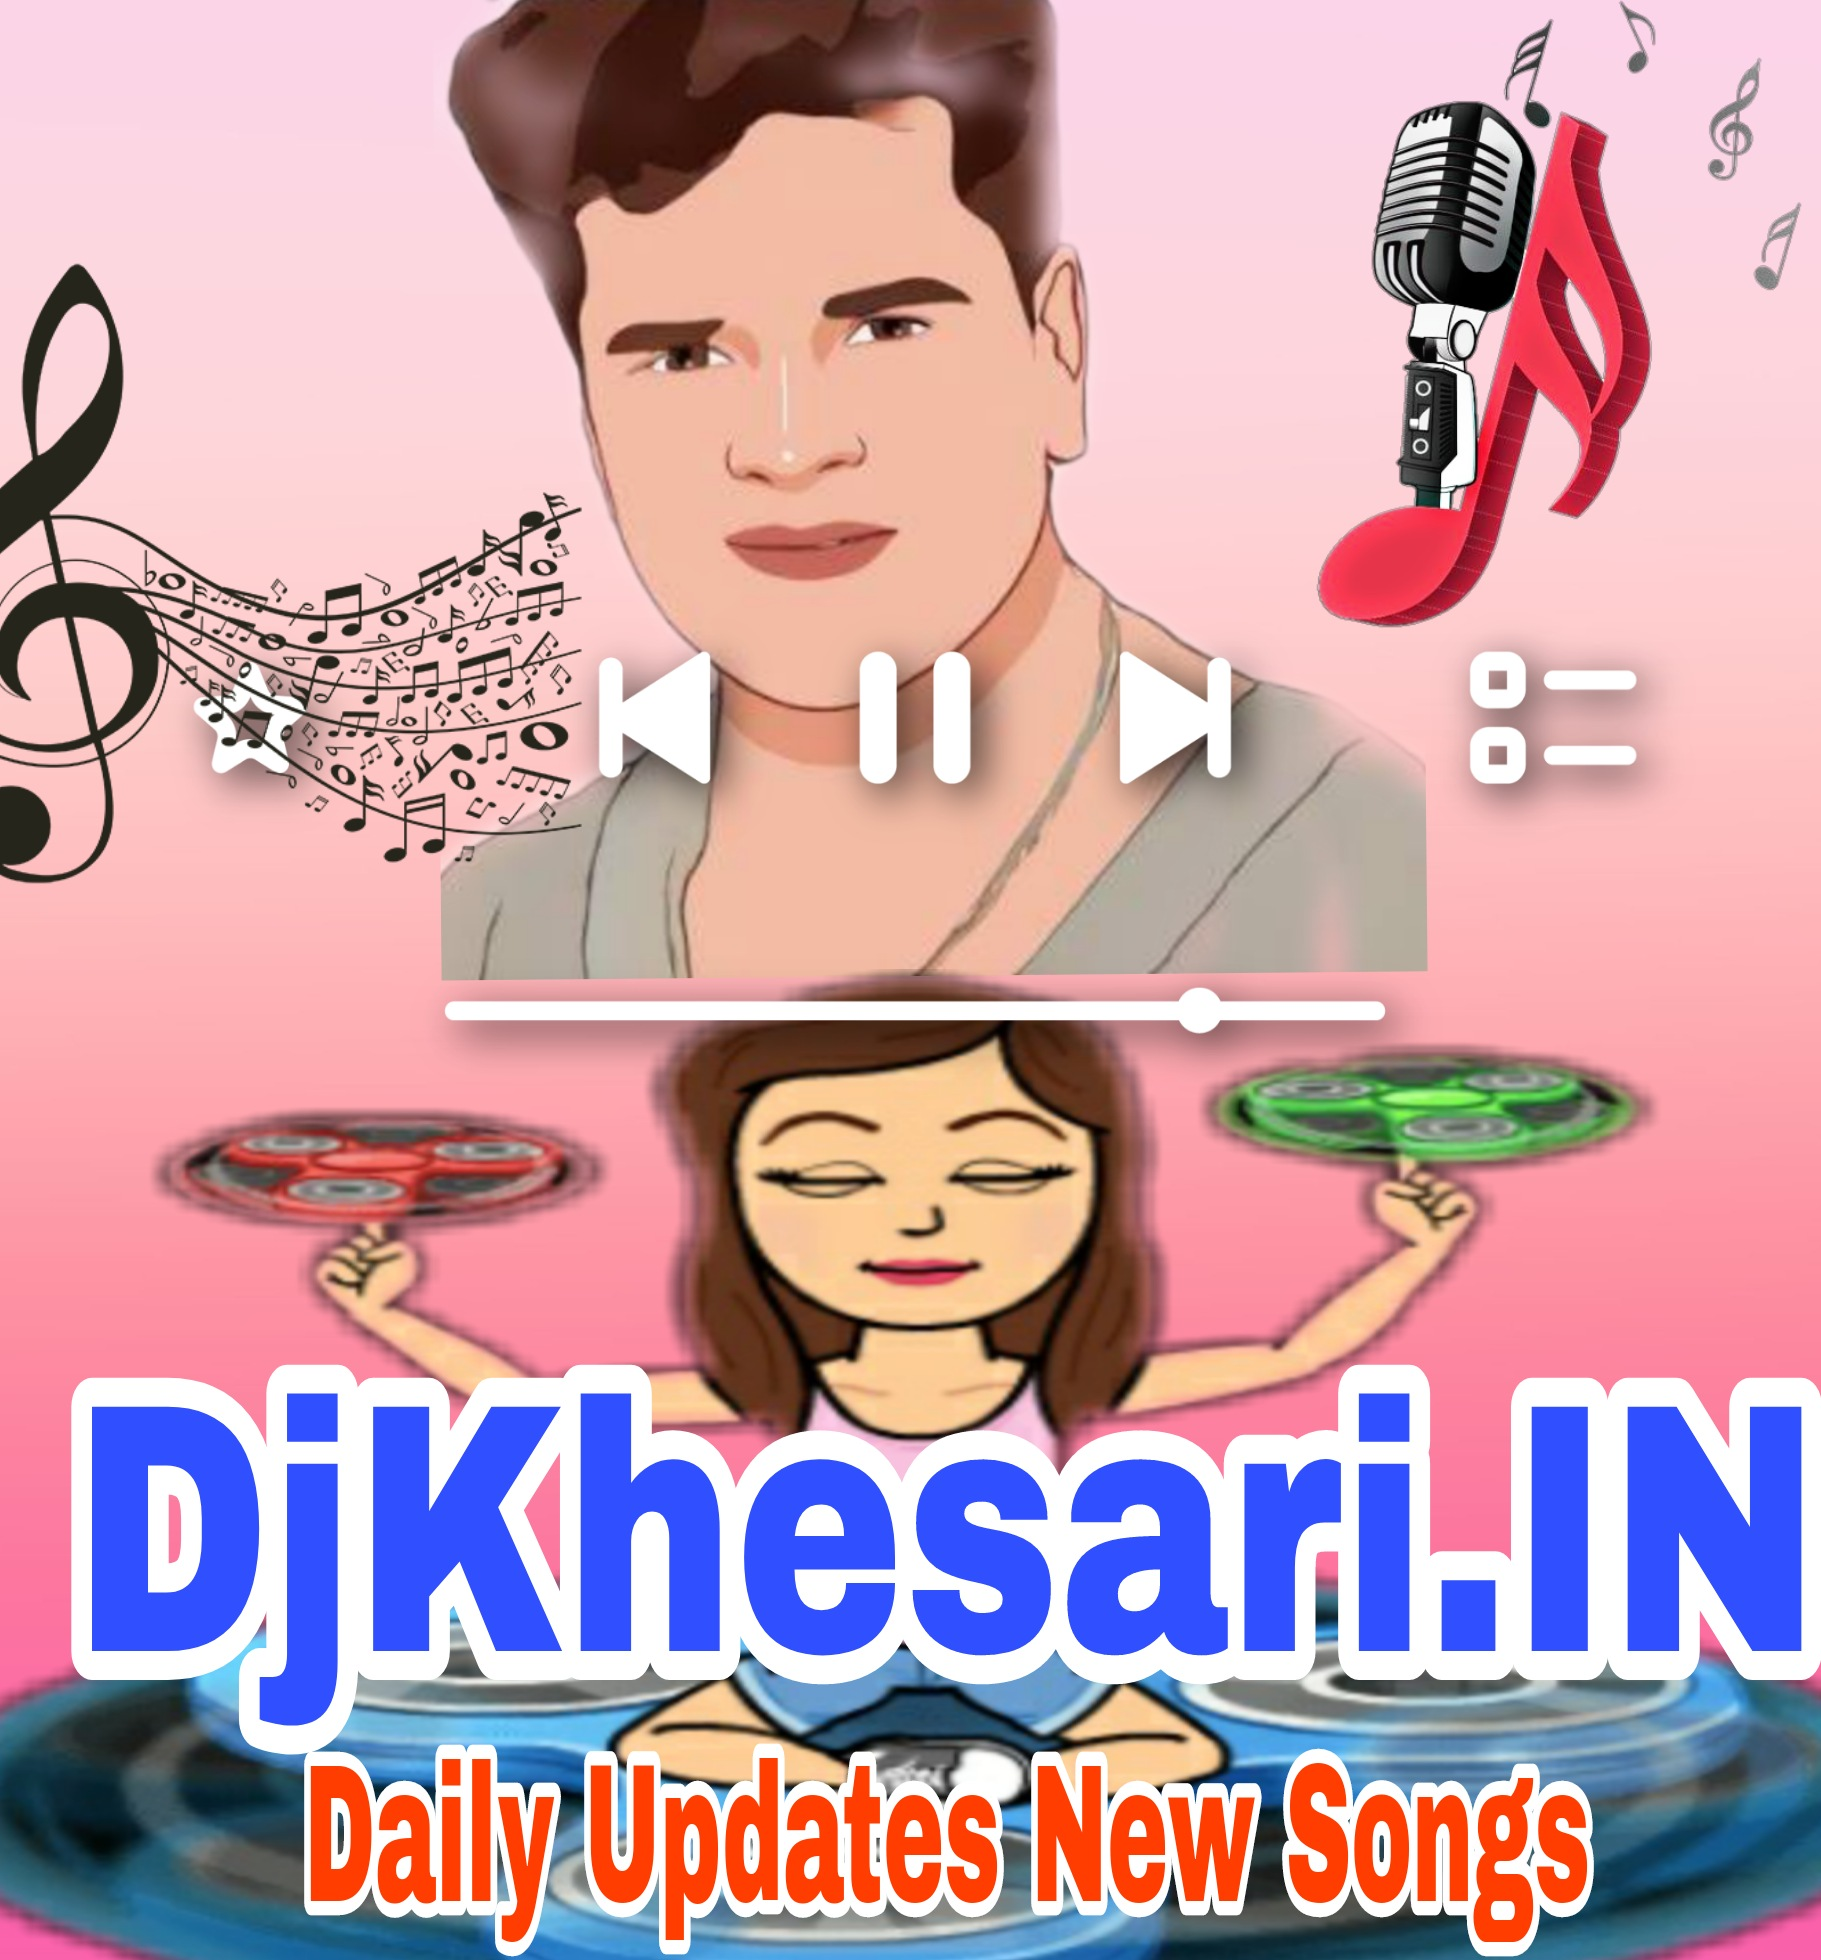 Rangwa PetiKot Me Gail Full Dialogue Competition MIX By Dj VisHaL BaBu Hi TecH Jagdishpur Shiv MandiR GoRaKhPuR